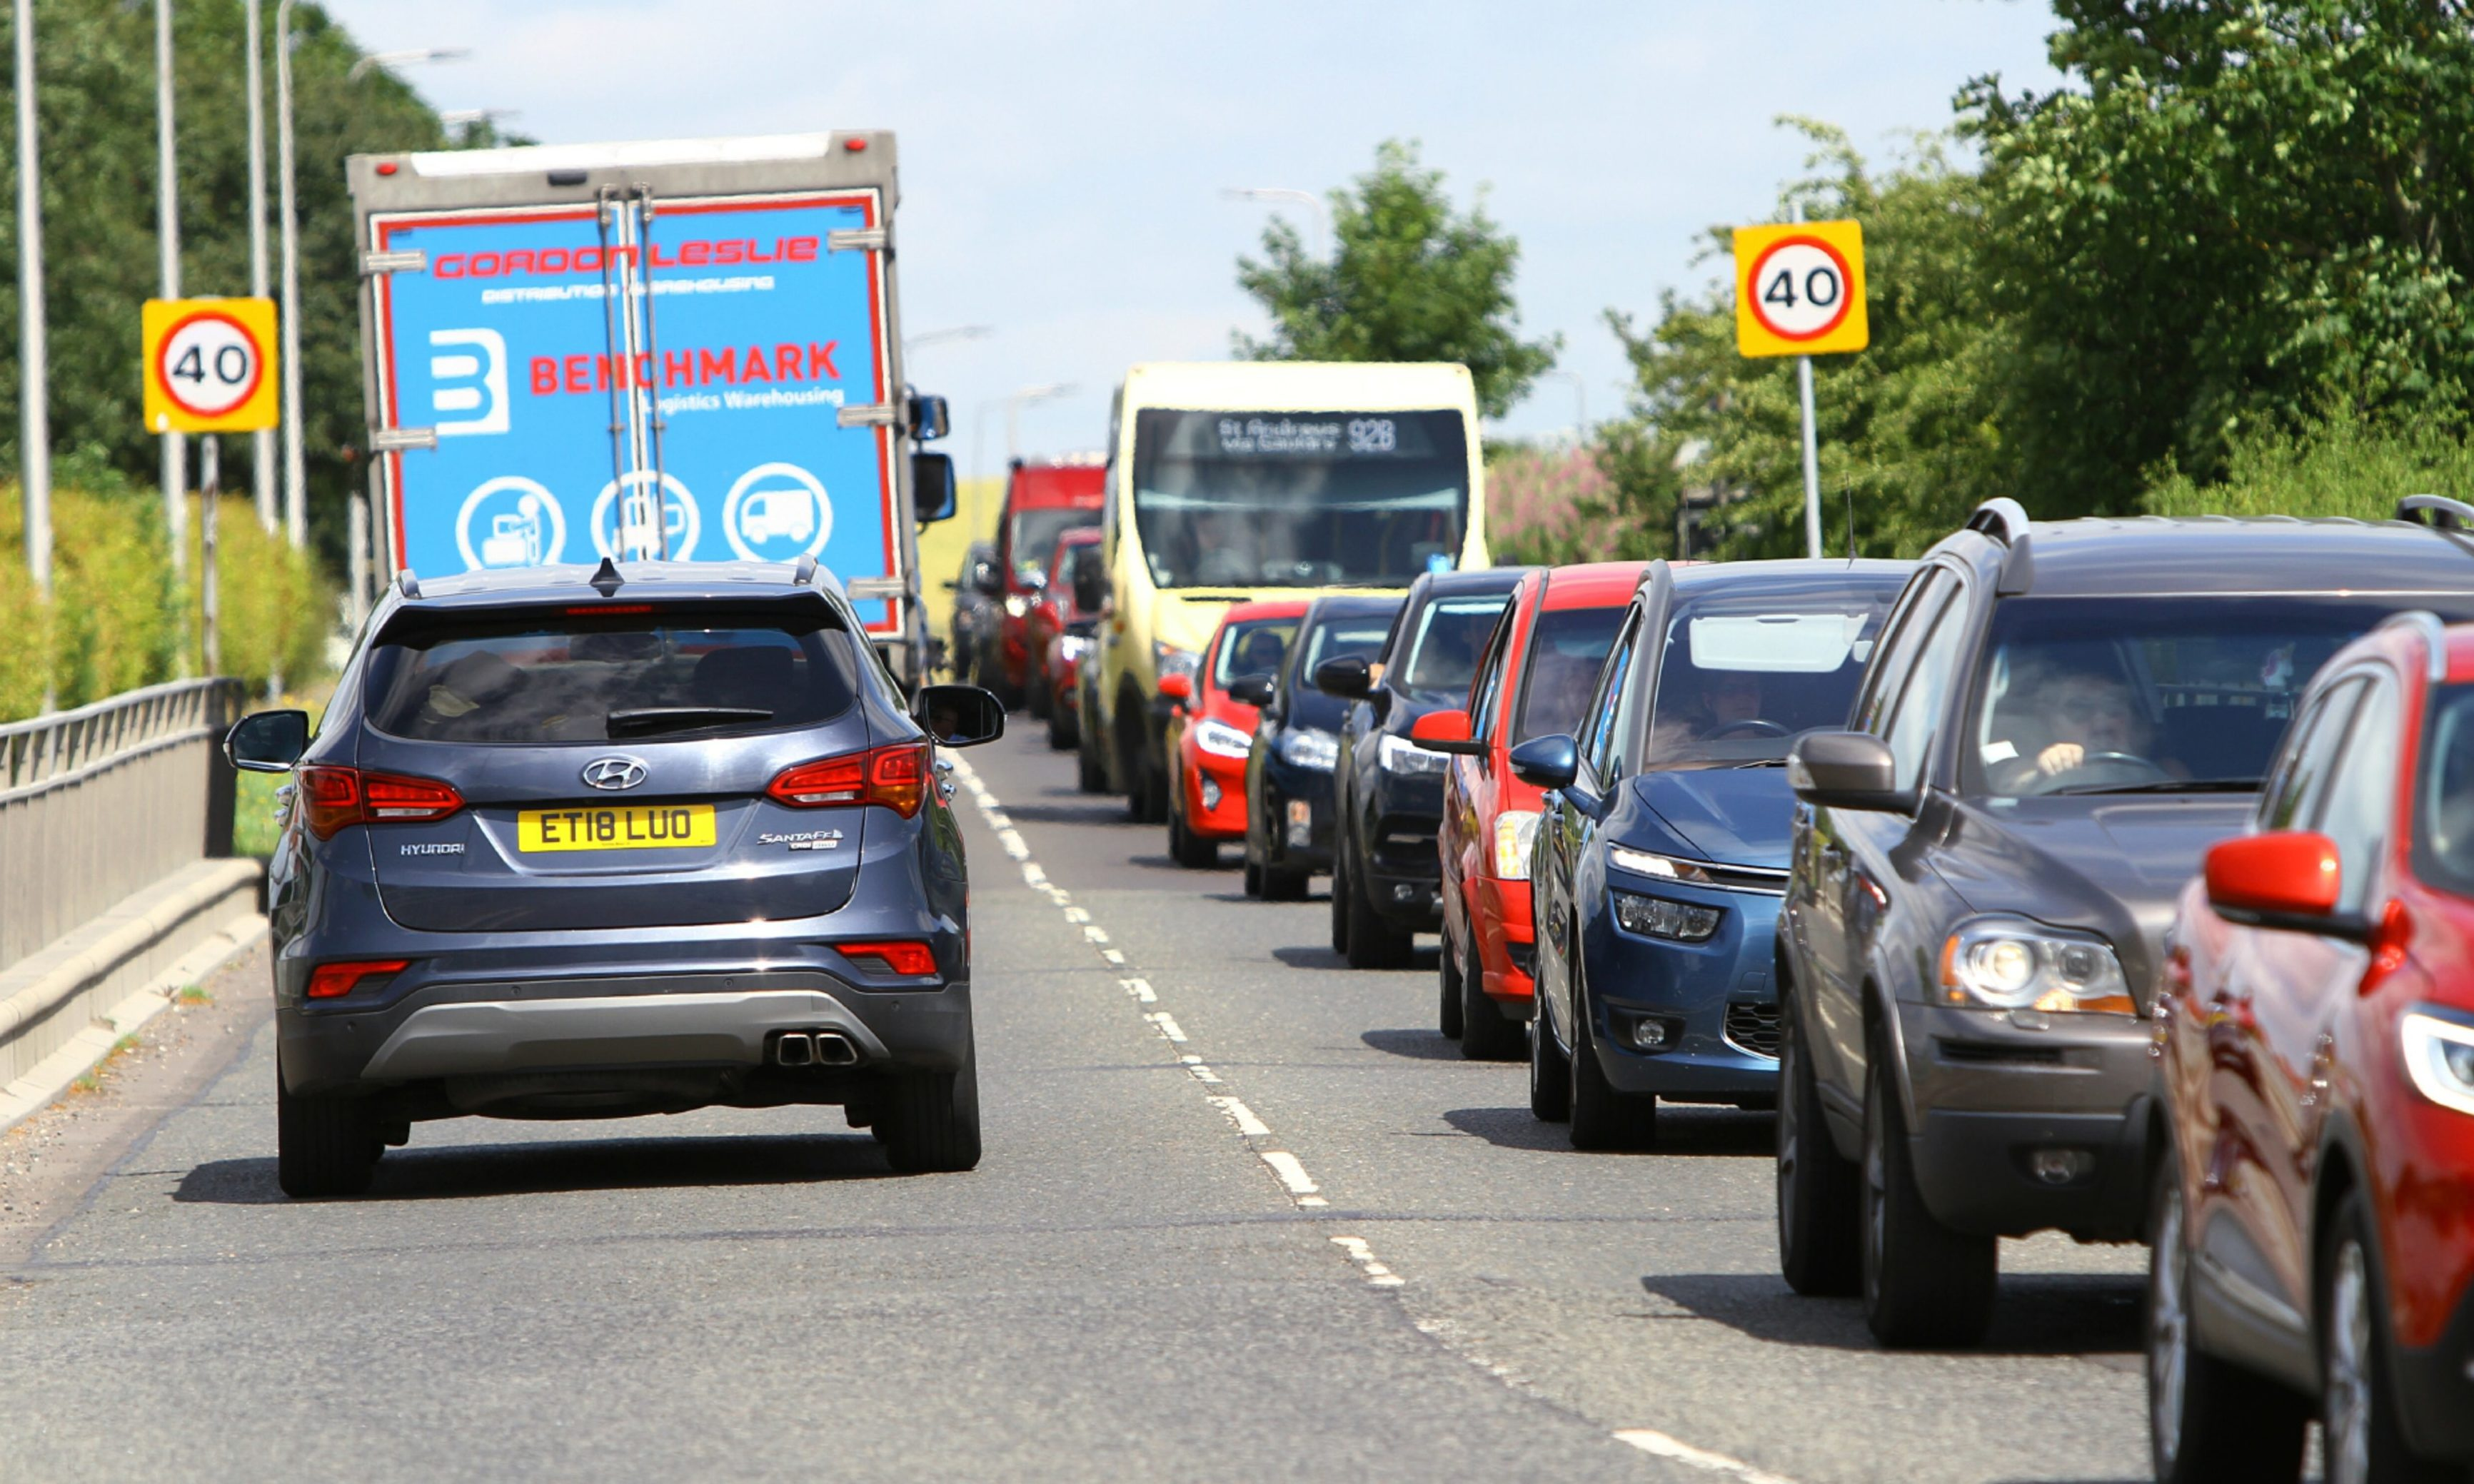 The disruption in Guardbridge today as a result of the roadworks being carried out.